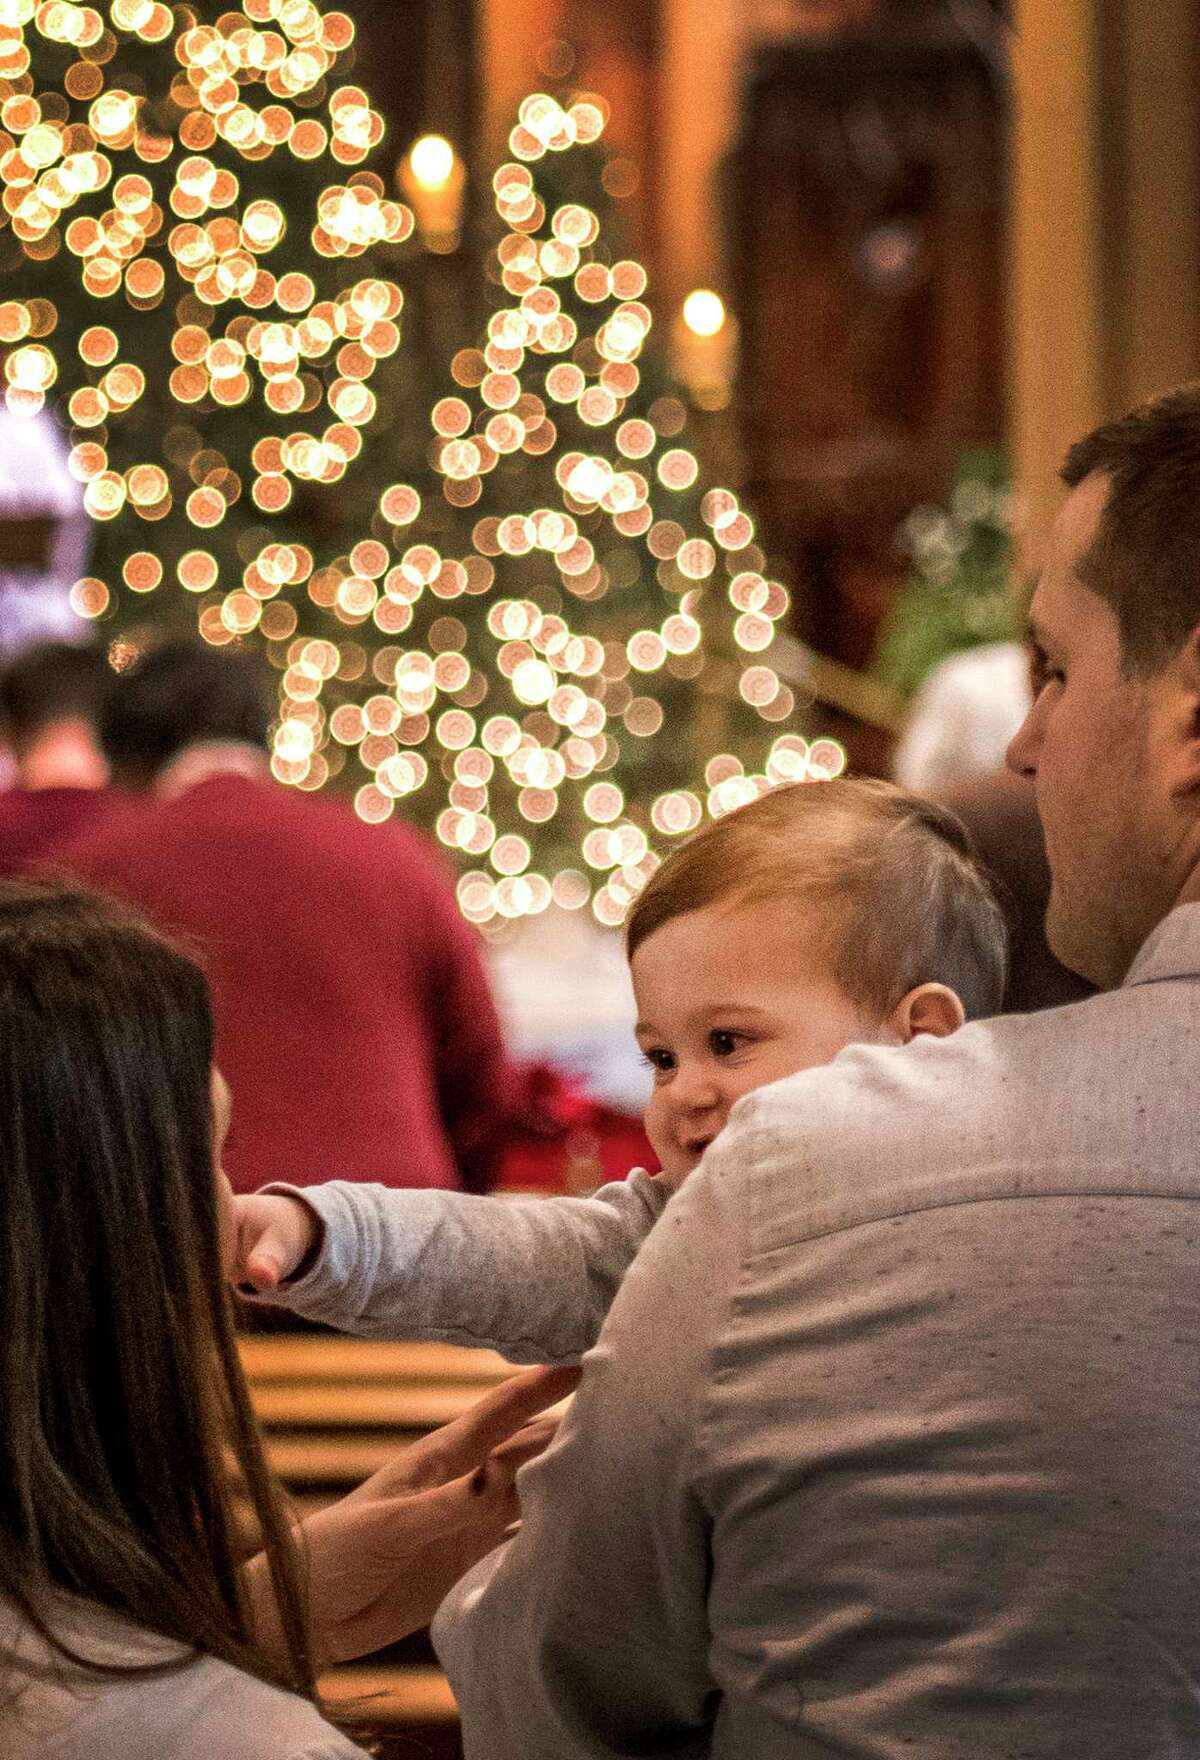 Mason Karasavov 11 months in the arms of his father Maksim Karasavov enjoys the beautiful music as he reaches out for his mom Amanda Ciotto during the Christmas Day service at the Cathedral of Immaculate Conception Monday Dec 25, 2017 in Albany, N.Y. (Skip Dickstein/ Times Union)